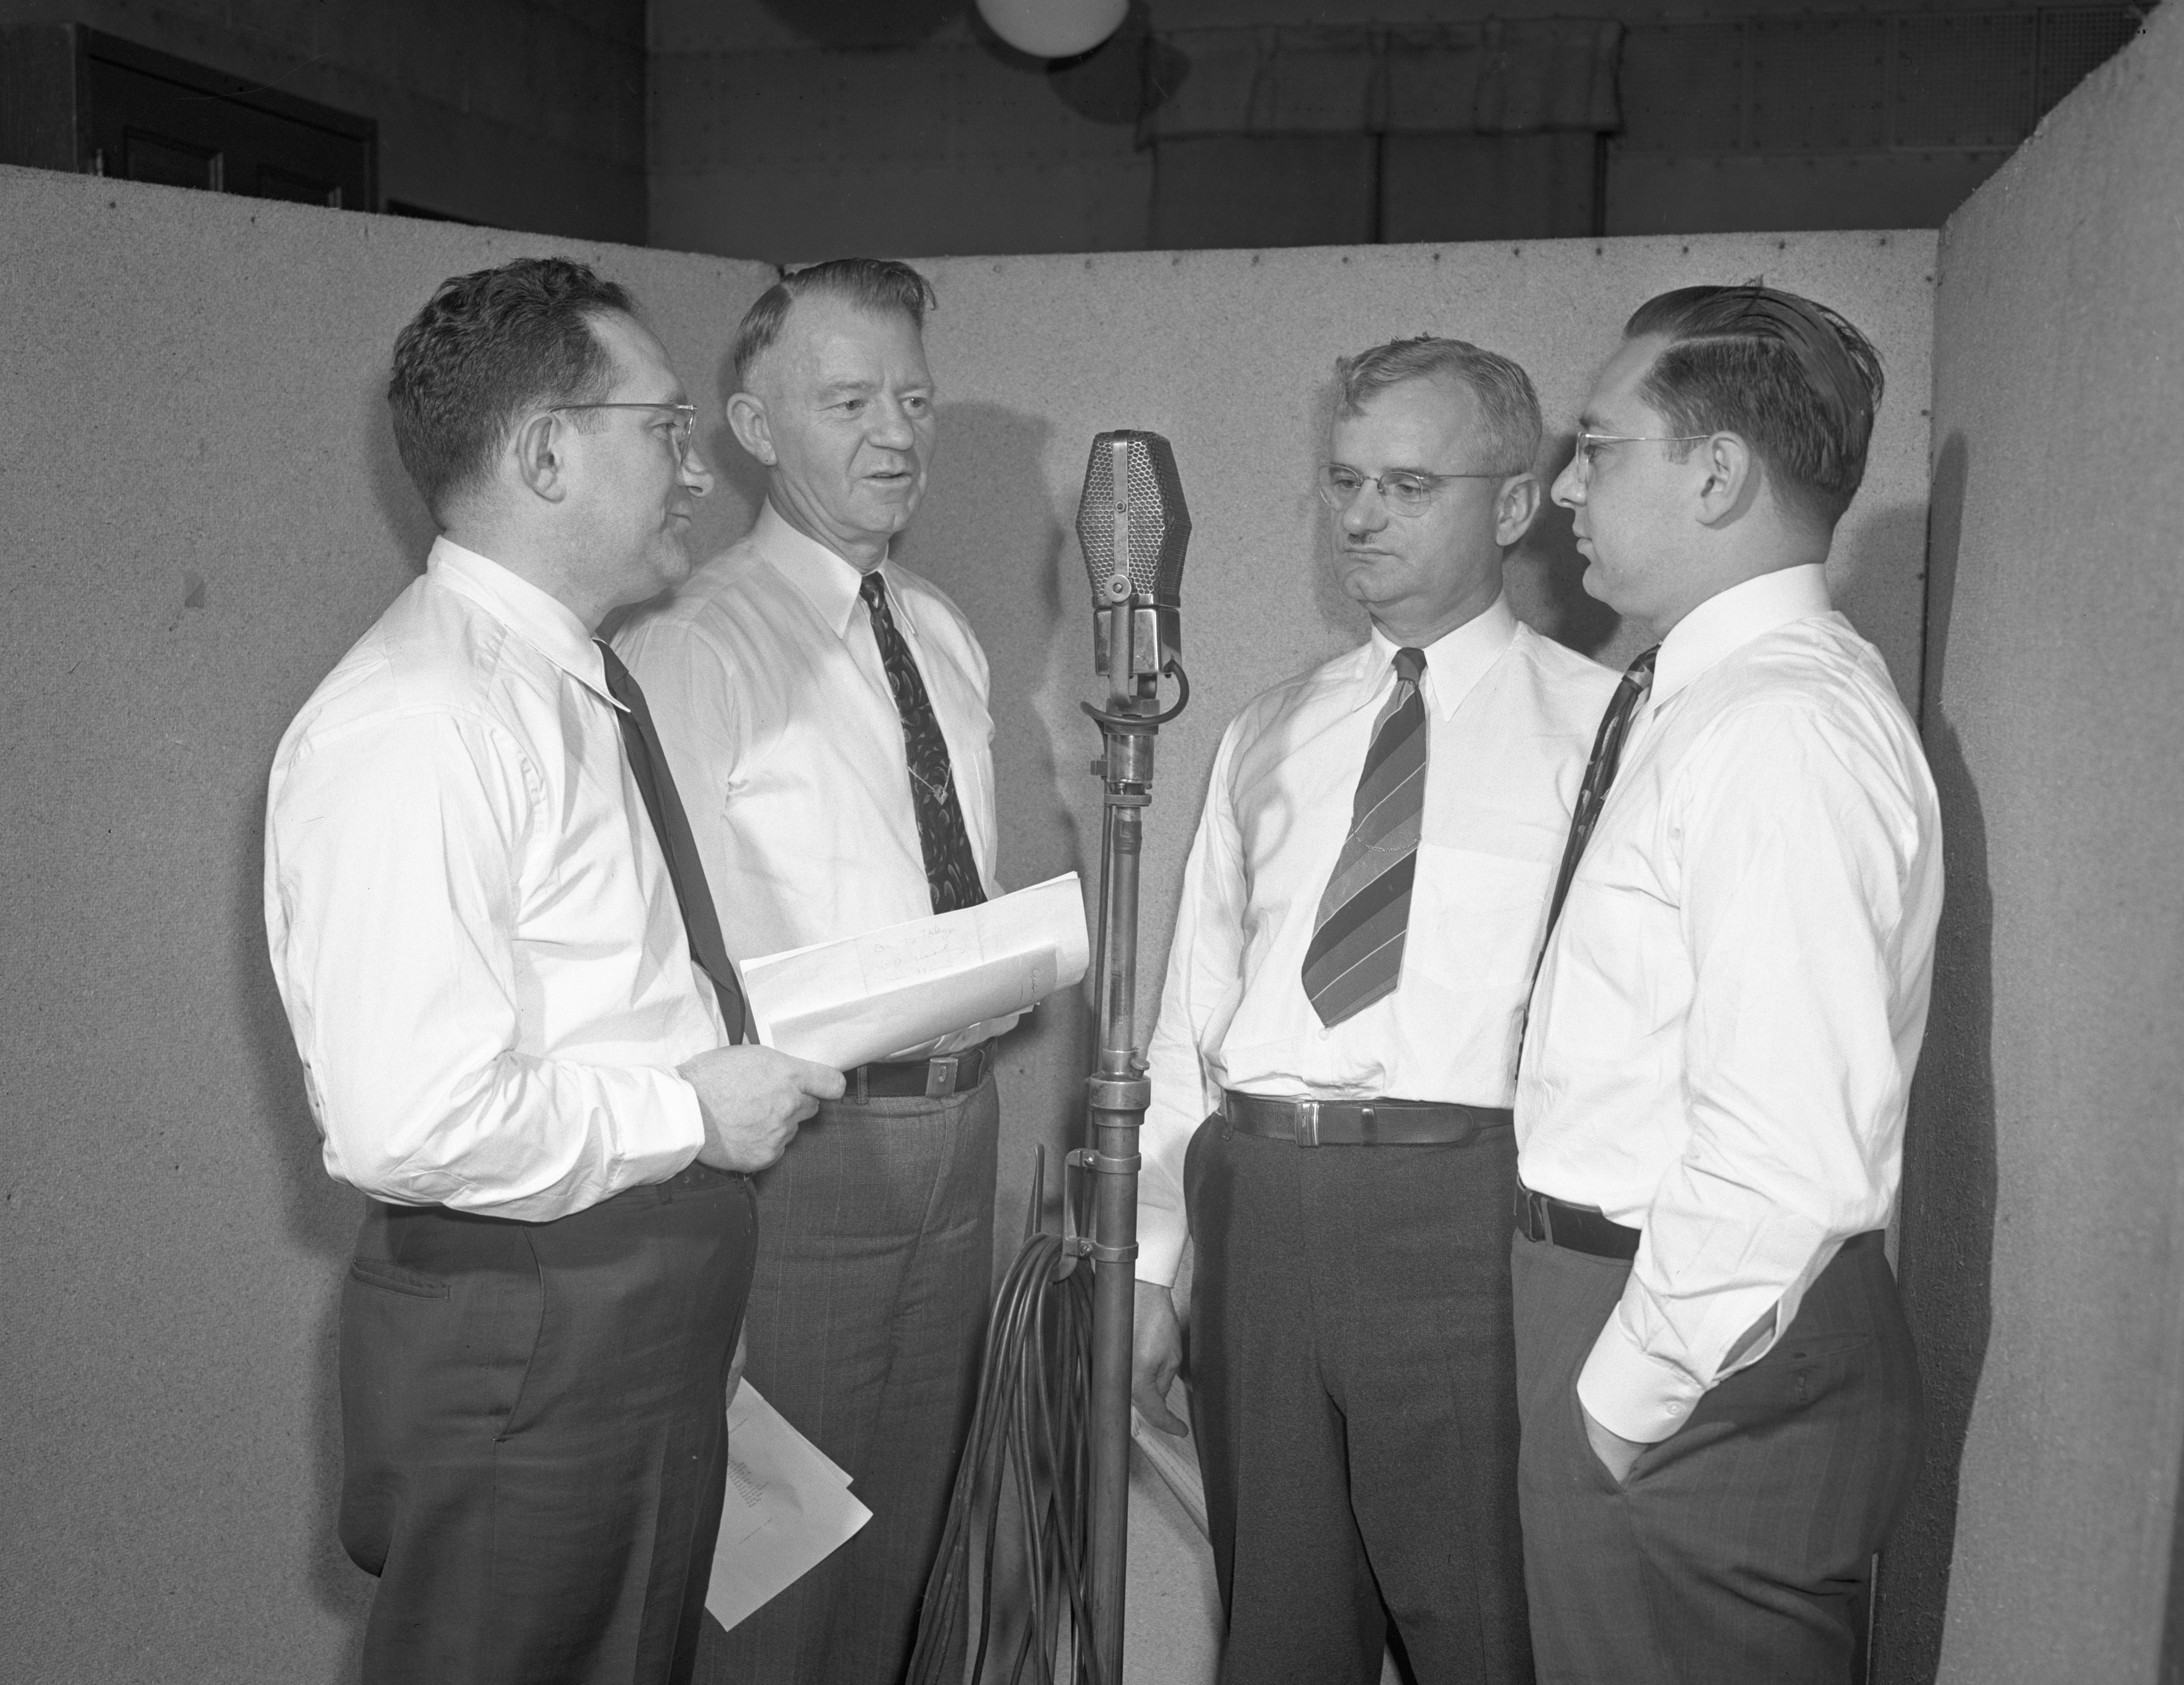 University of Michigan Broadcast Morris Hall (WWJ) with Vets Rehabilitation Directors, May 1945 image